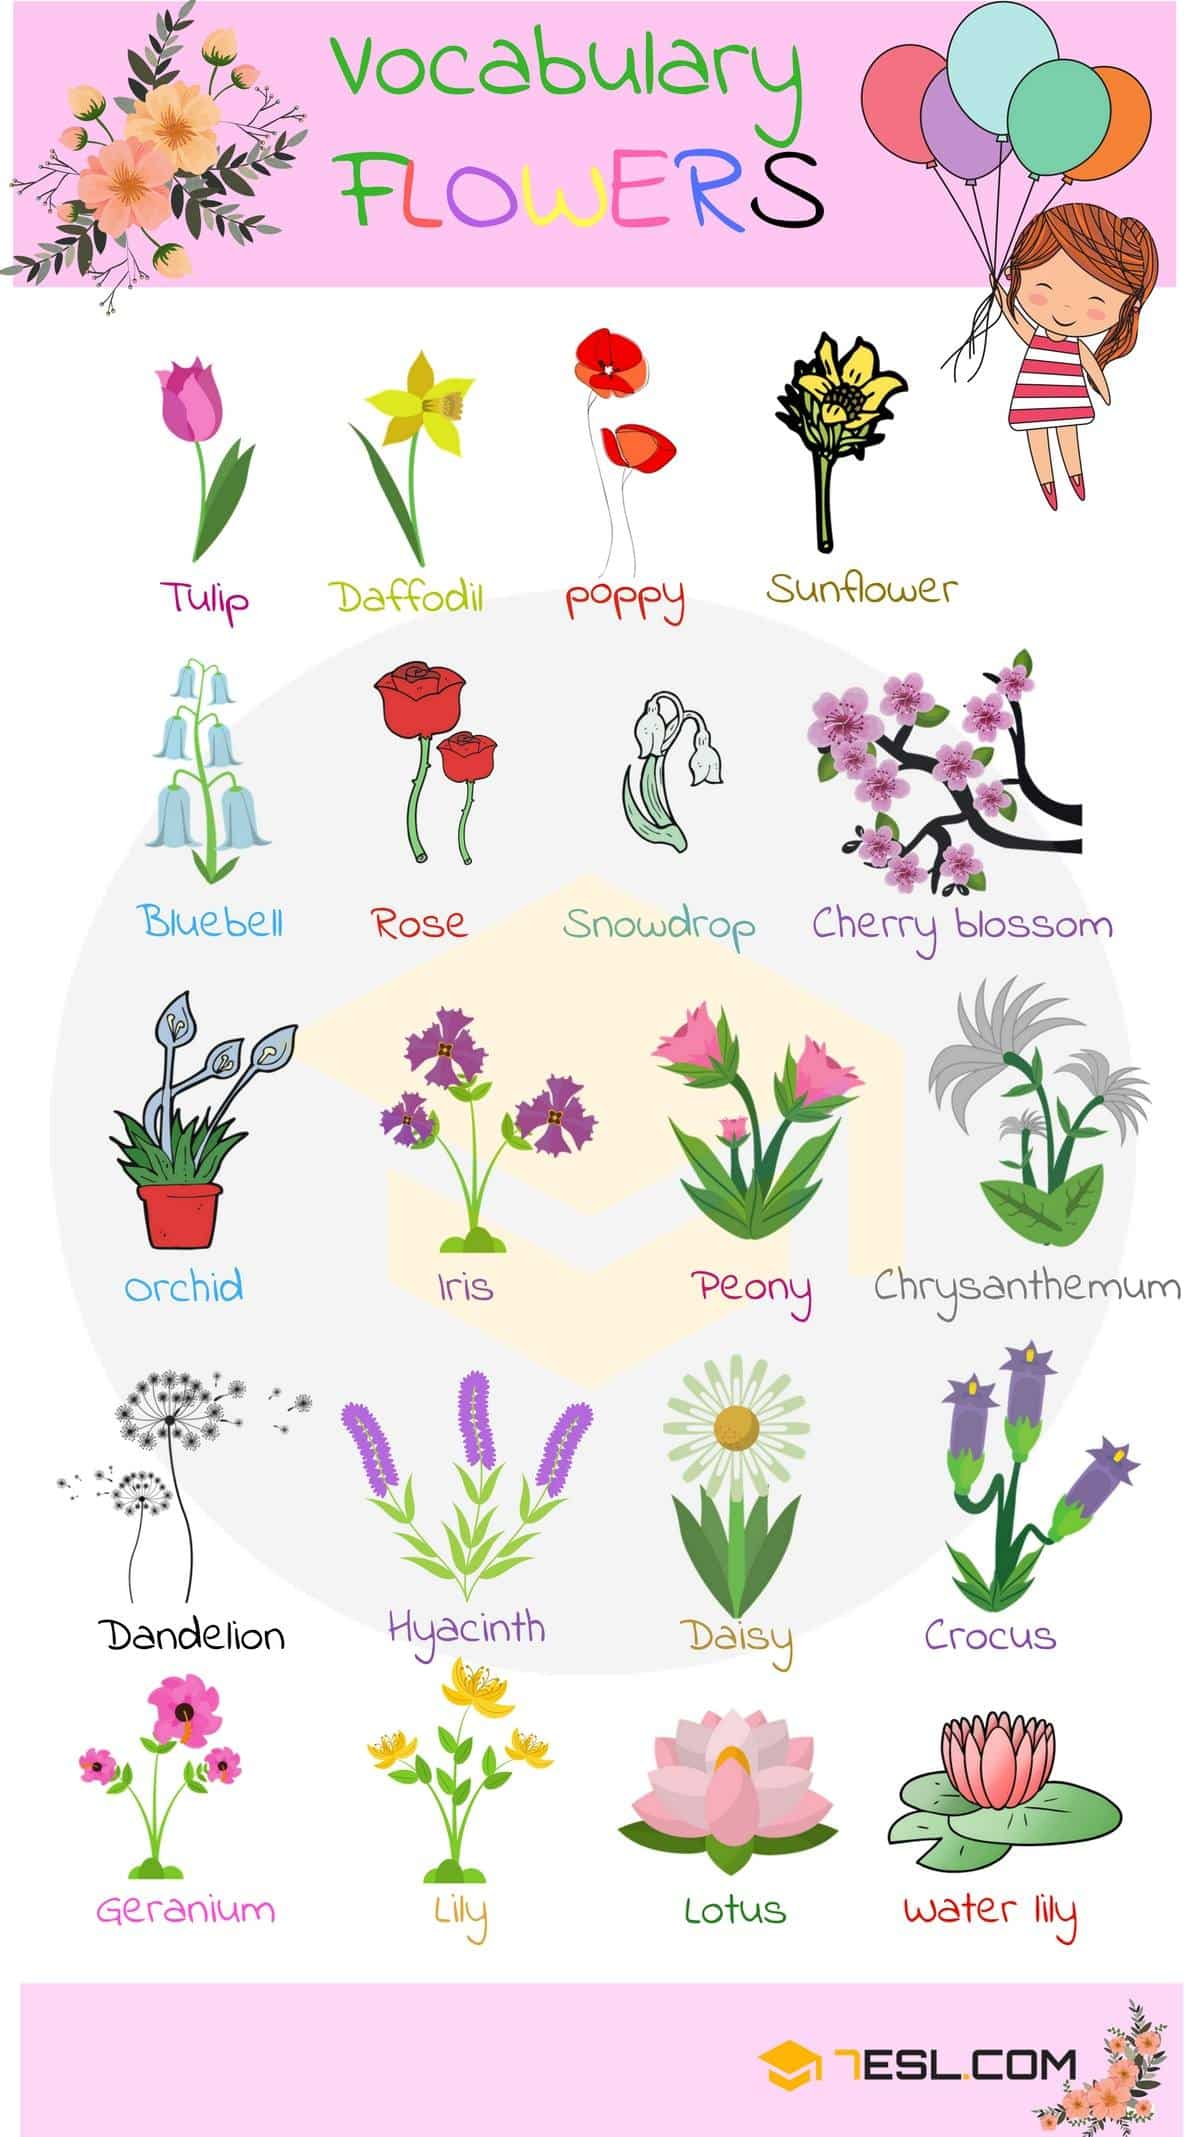 Flowers Vocabulary